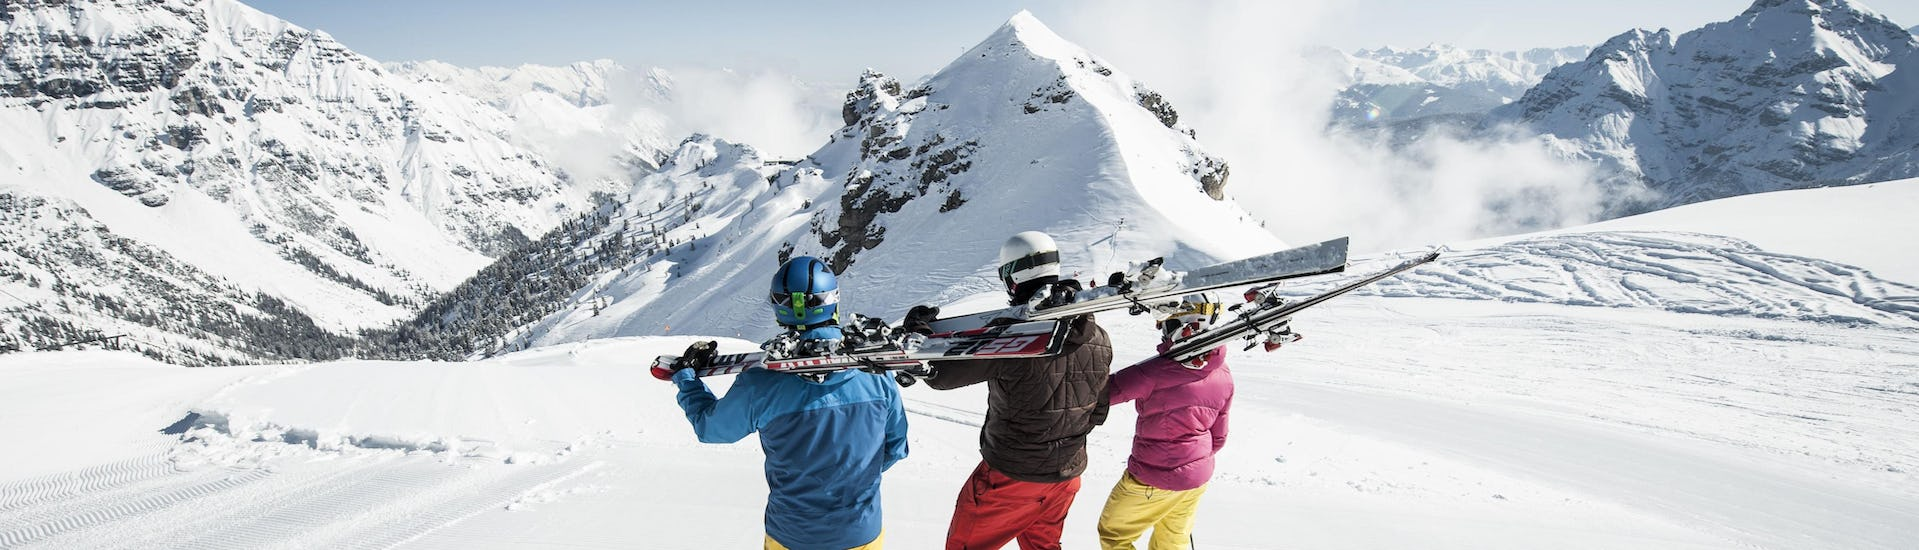 3 skiers prepare for their ski lessons in English in the ski resort of Switzerland.